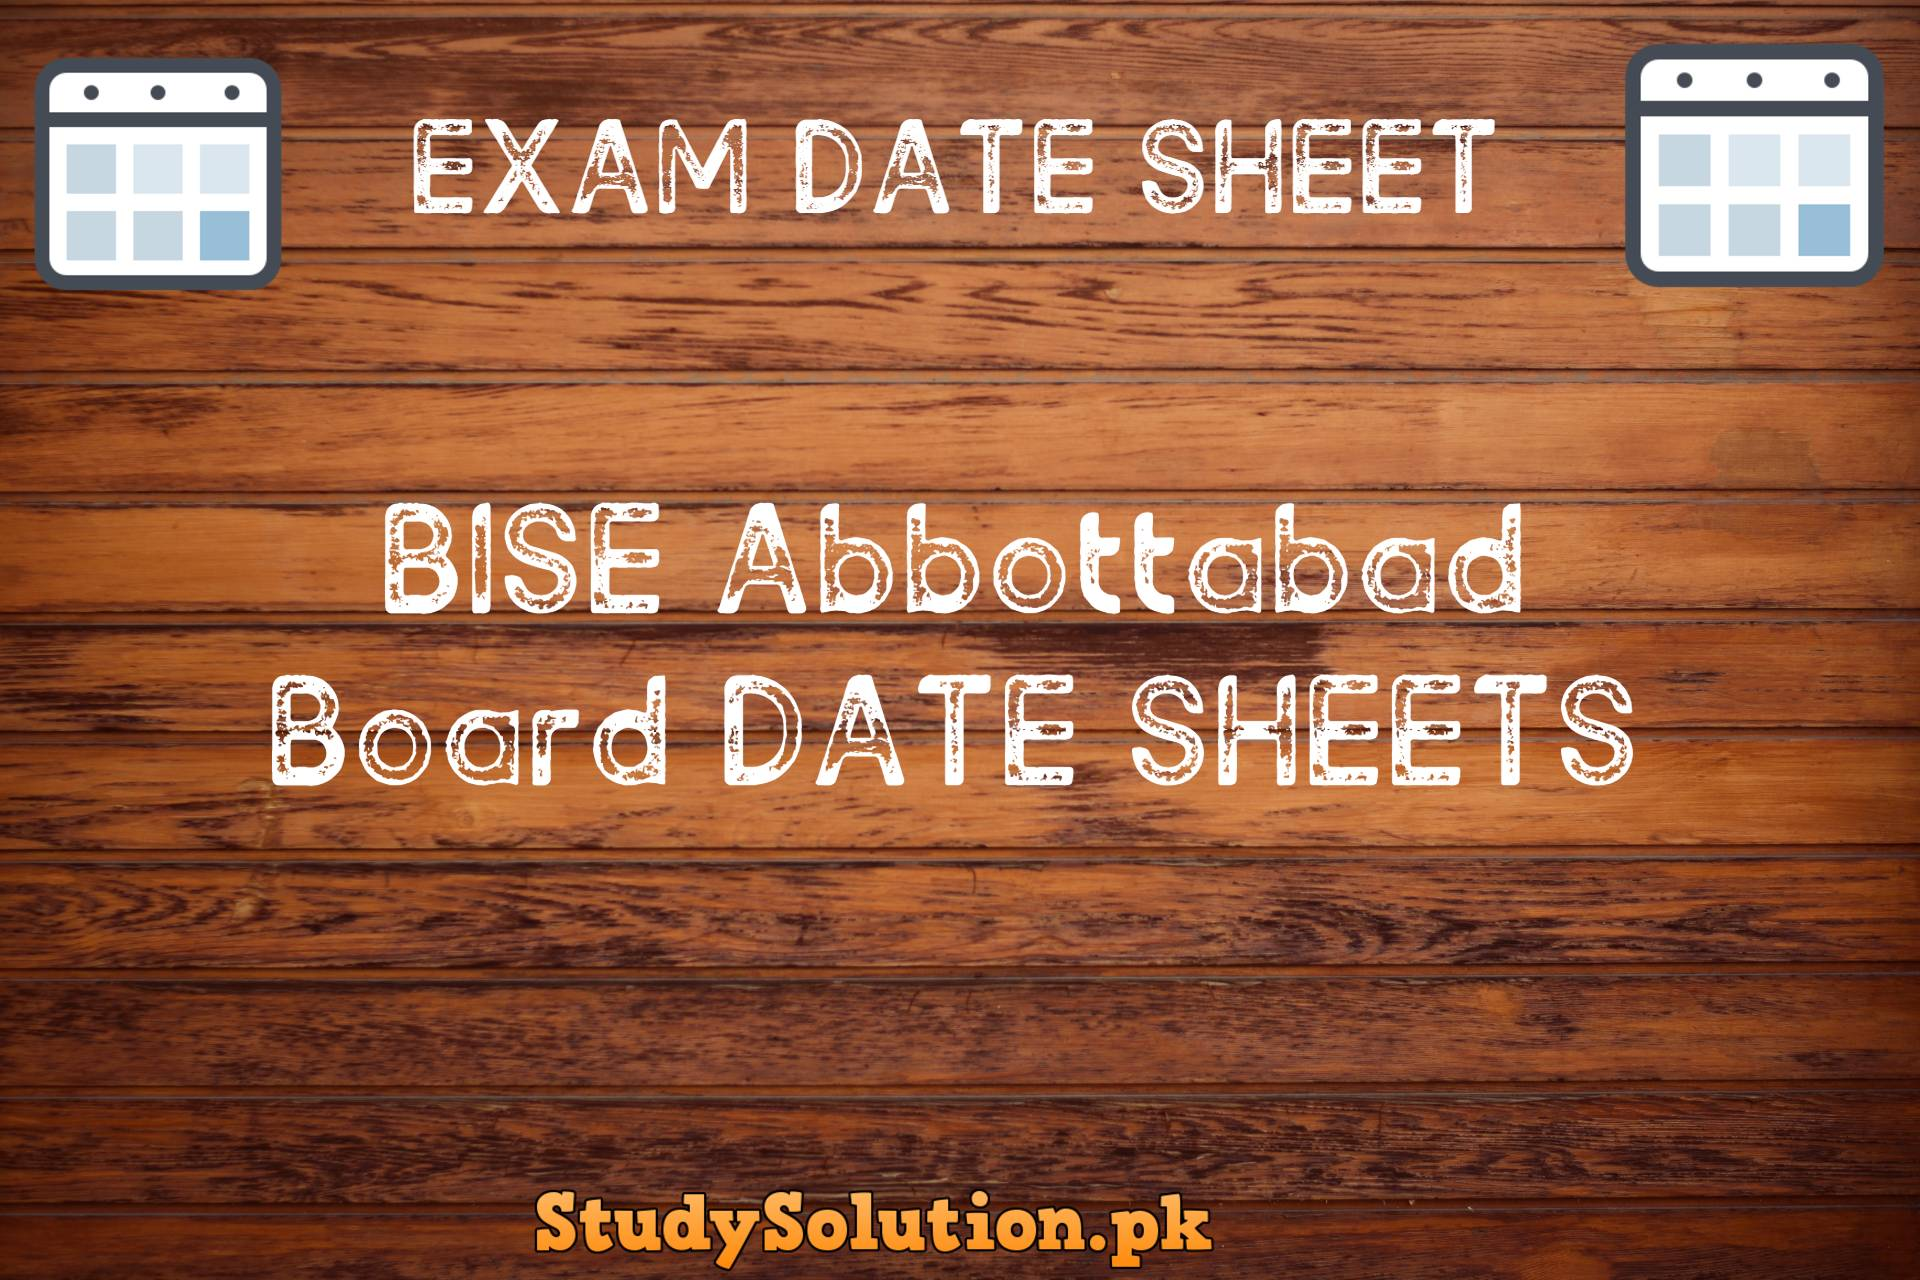 BISE Abbottabad Date Sheets